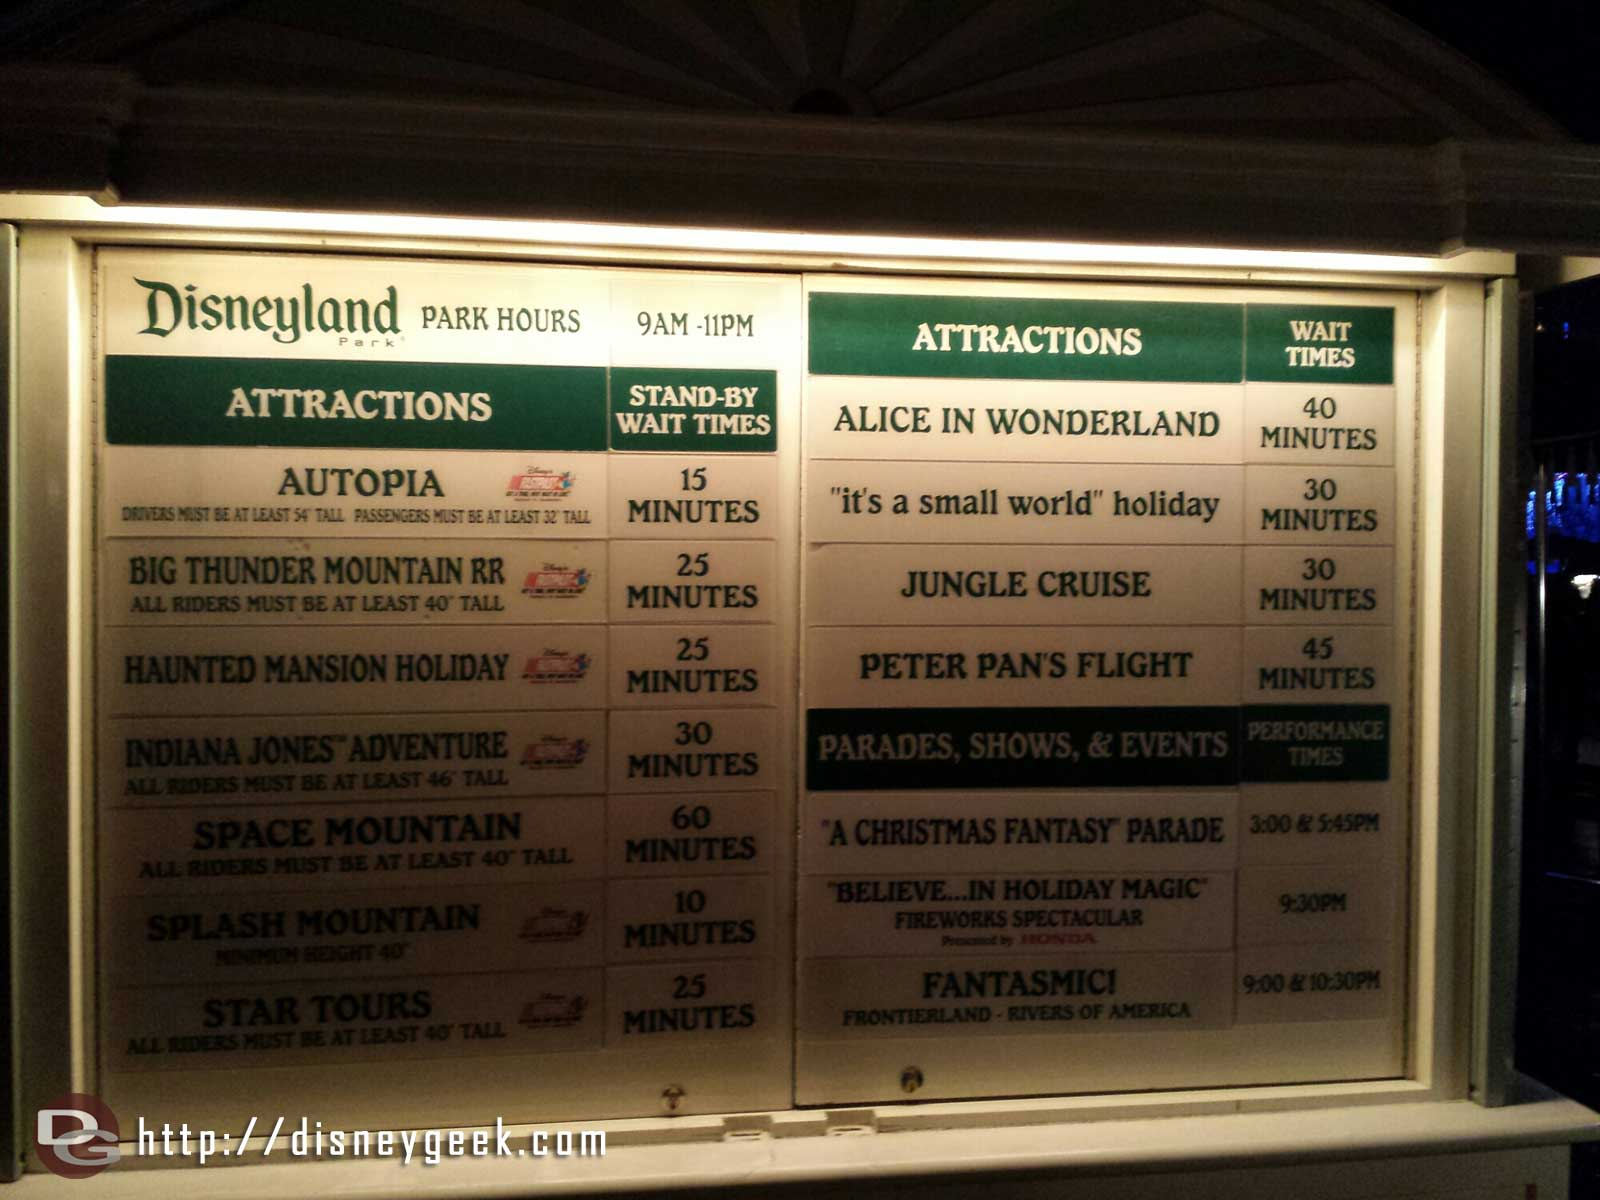 #Disneyland waits as of 7:45pm